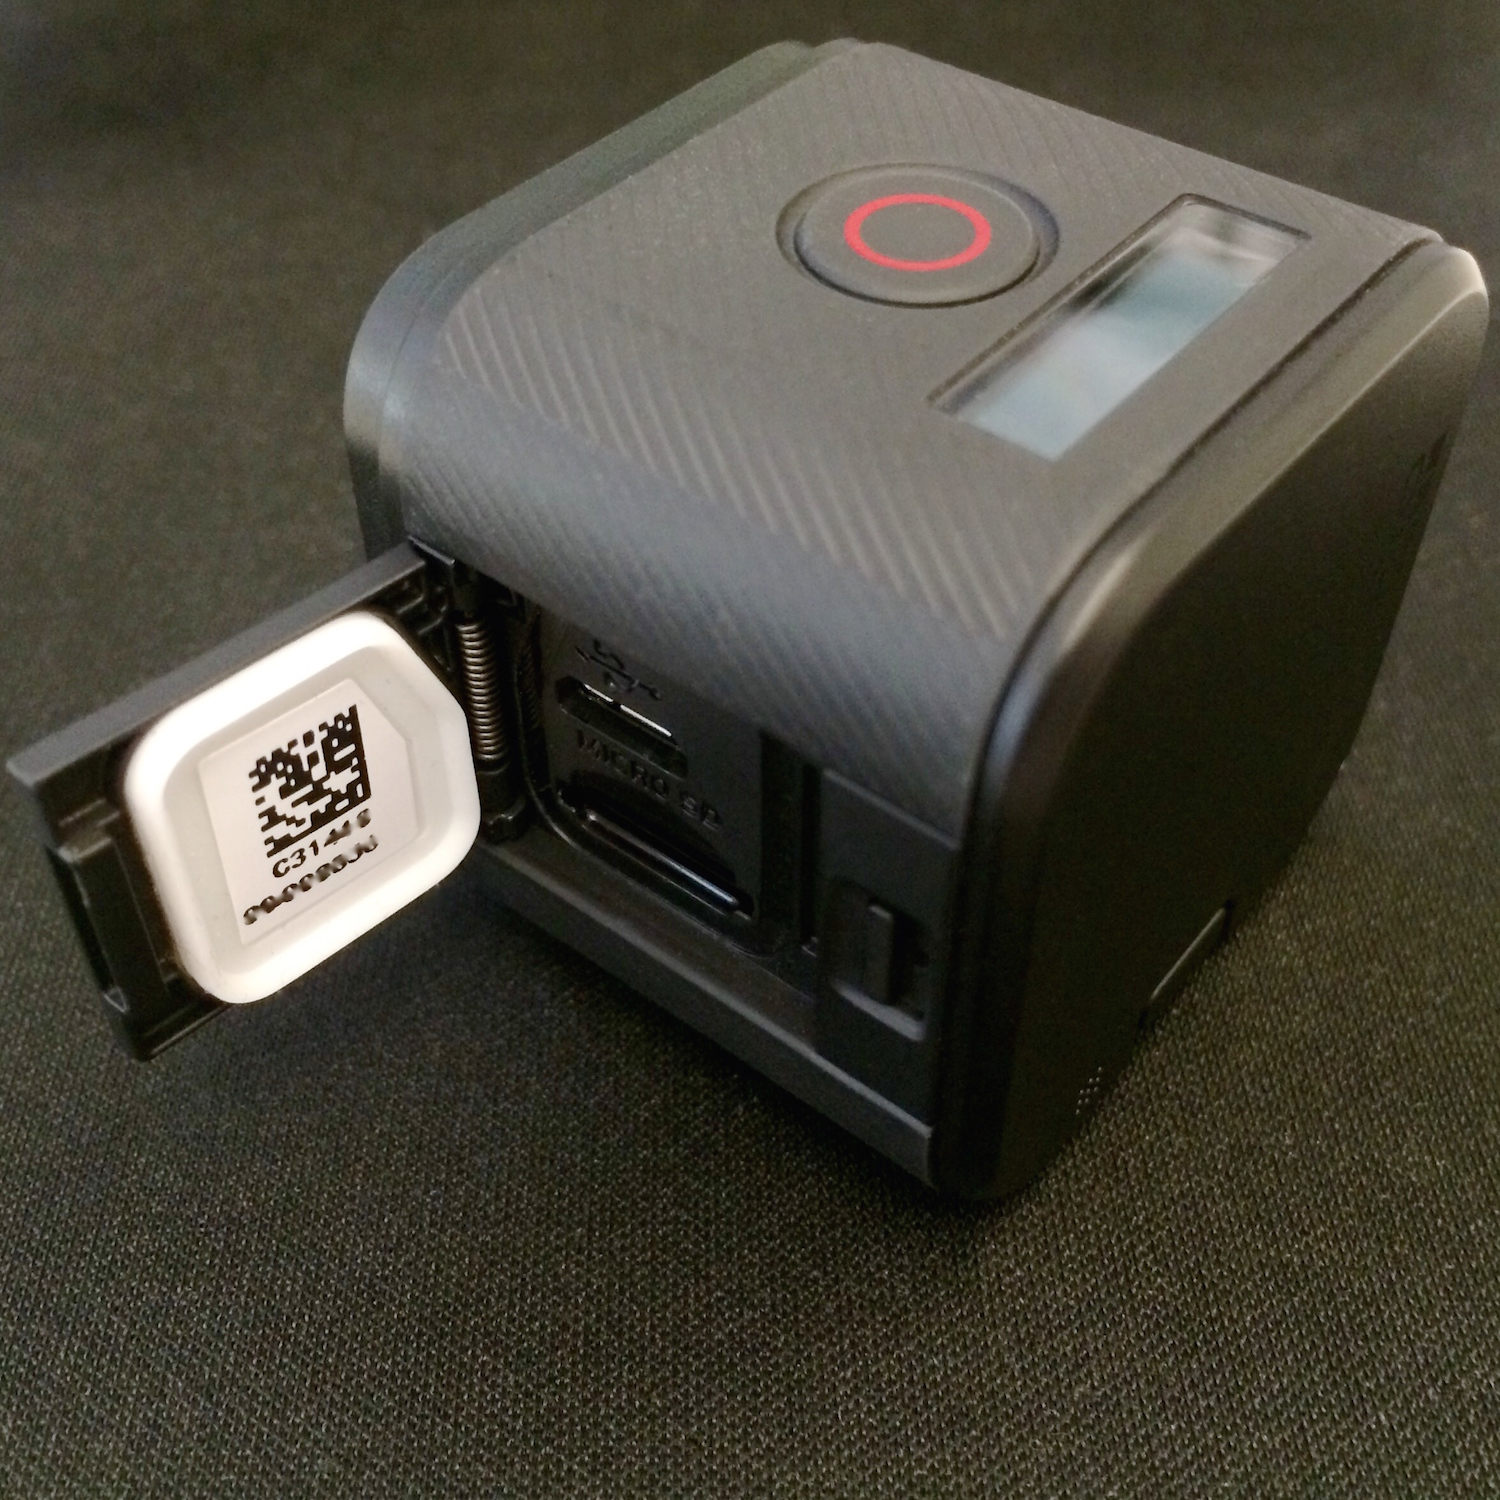 How To Find Your Gopro Serial Number